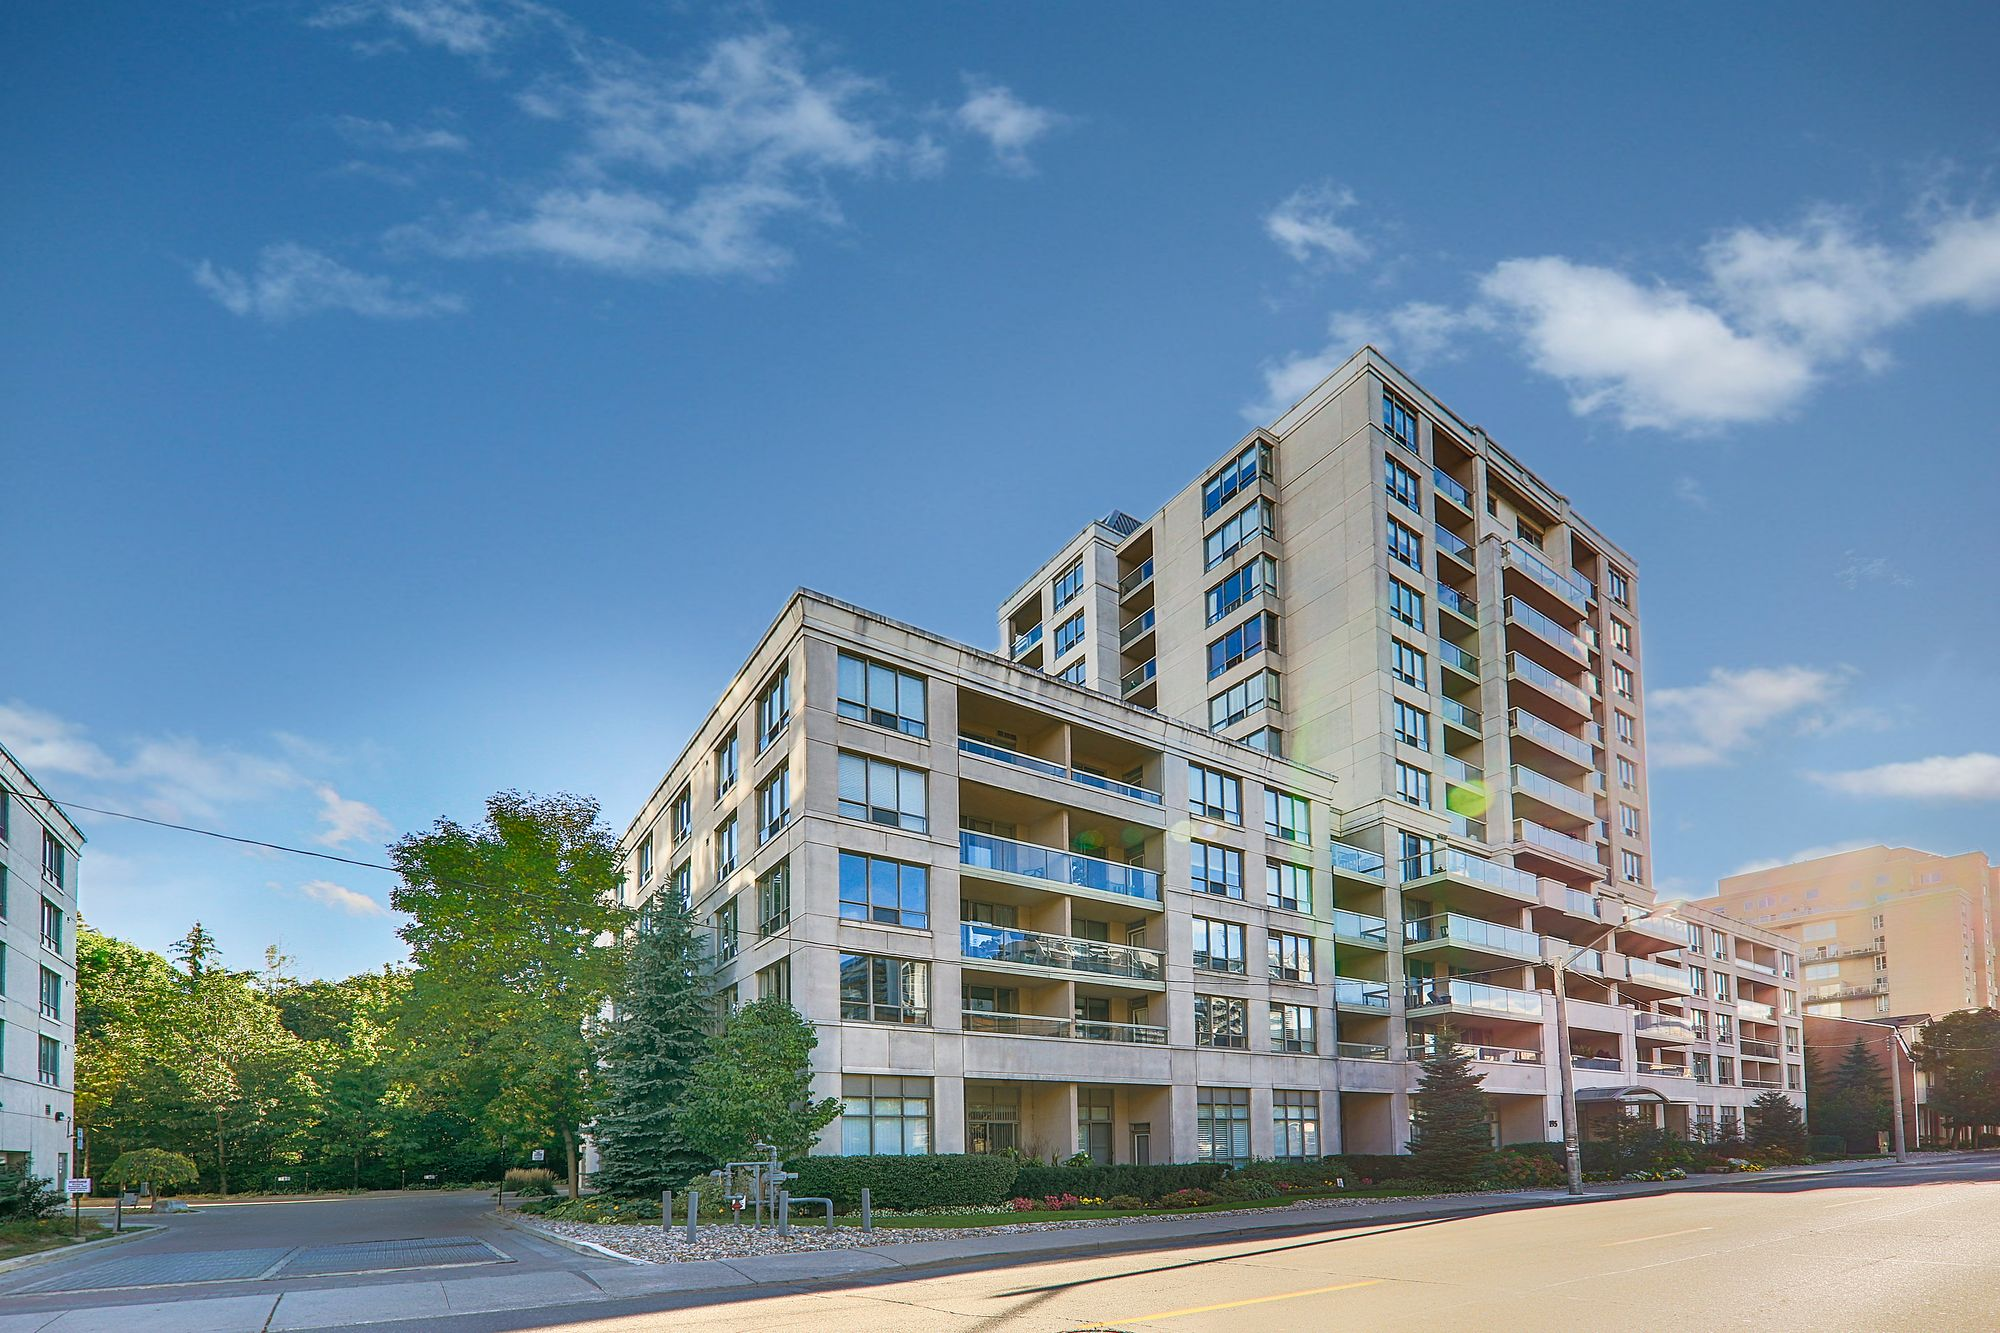 195 Merton St. This condo at The Rio III Condos is located in  Midtown, Toronto - image #2 of 4 by Strata.ca